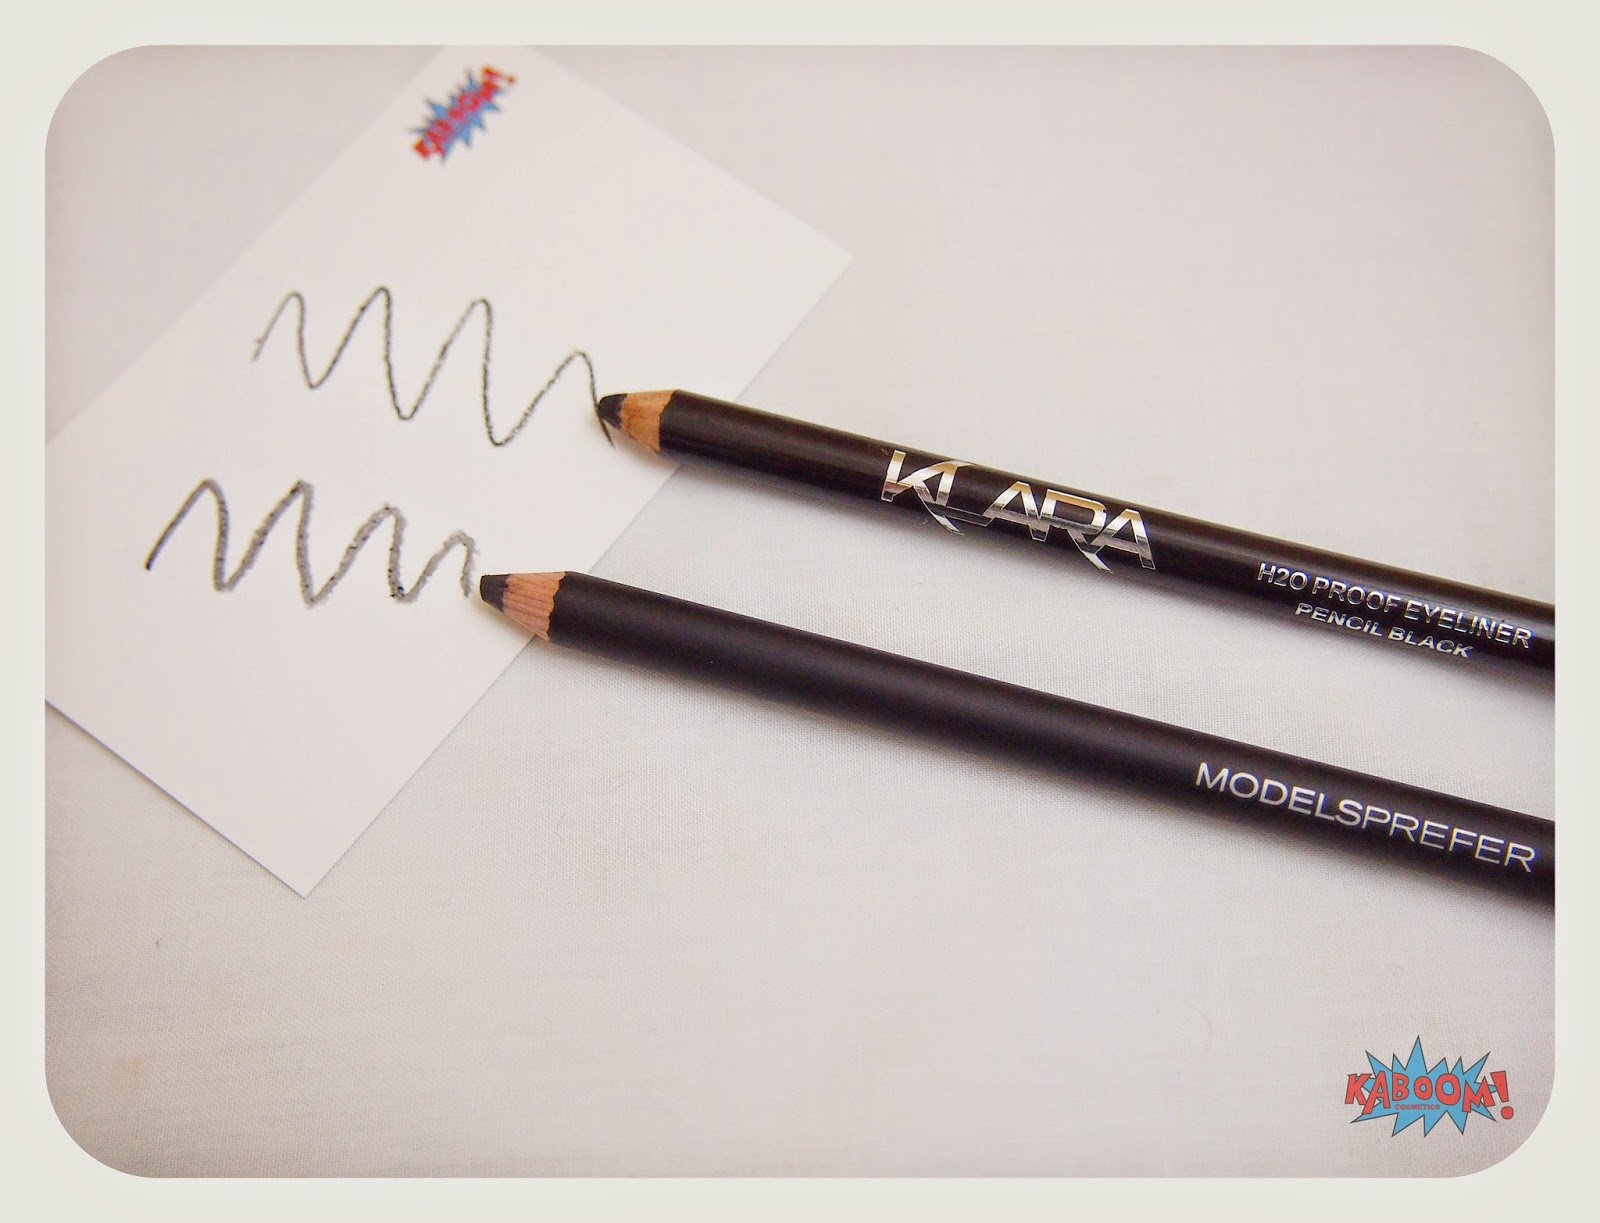 Winging It A Guide To Eyeliner Dani The Girl Xo Klara Liquid 1 Black H2o Proof Liner Is More Like Traditional Pencil And Models Prefer Kohl Has Creamier Texture